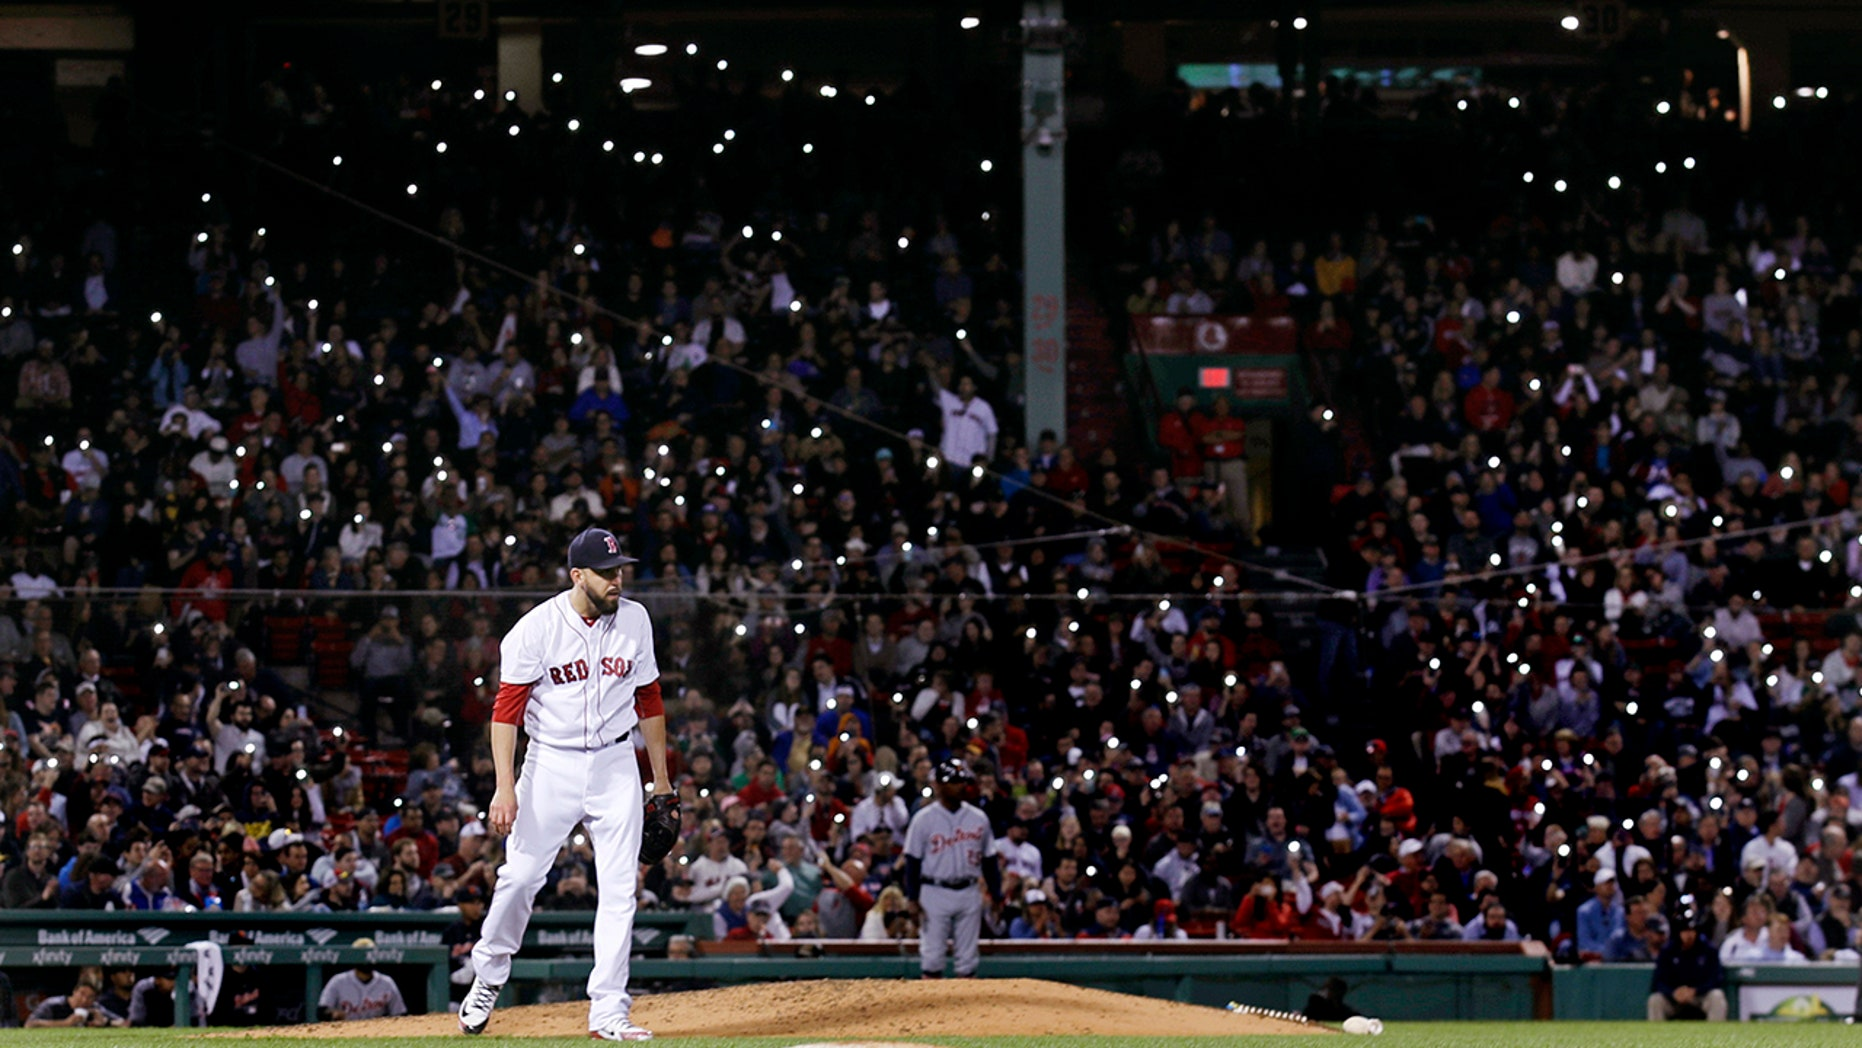 Boston Red Sox fans caused a delay in the seventh inning.